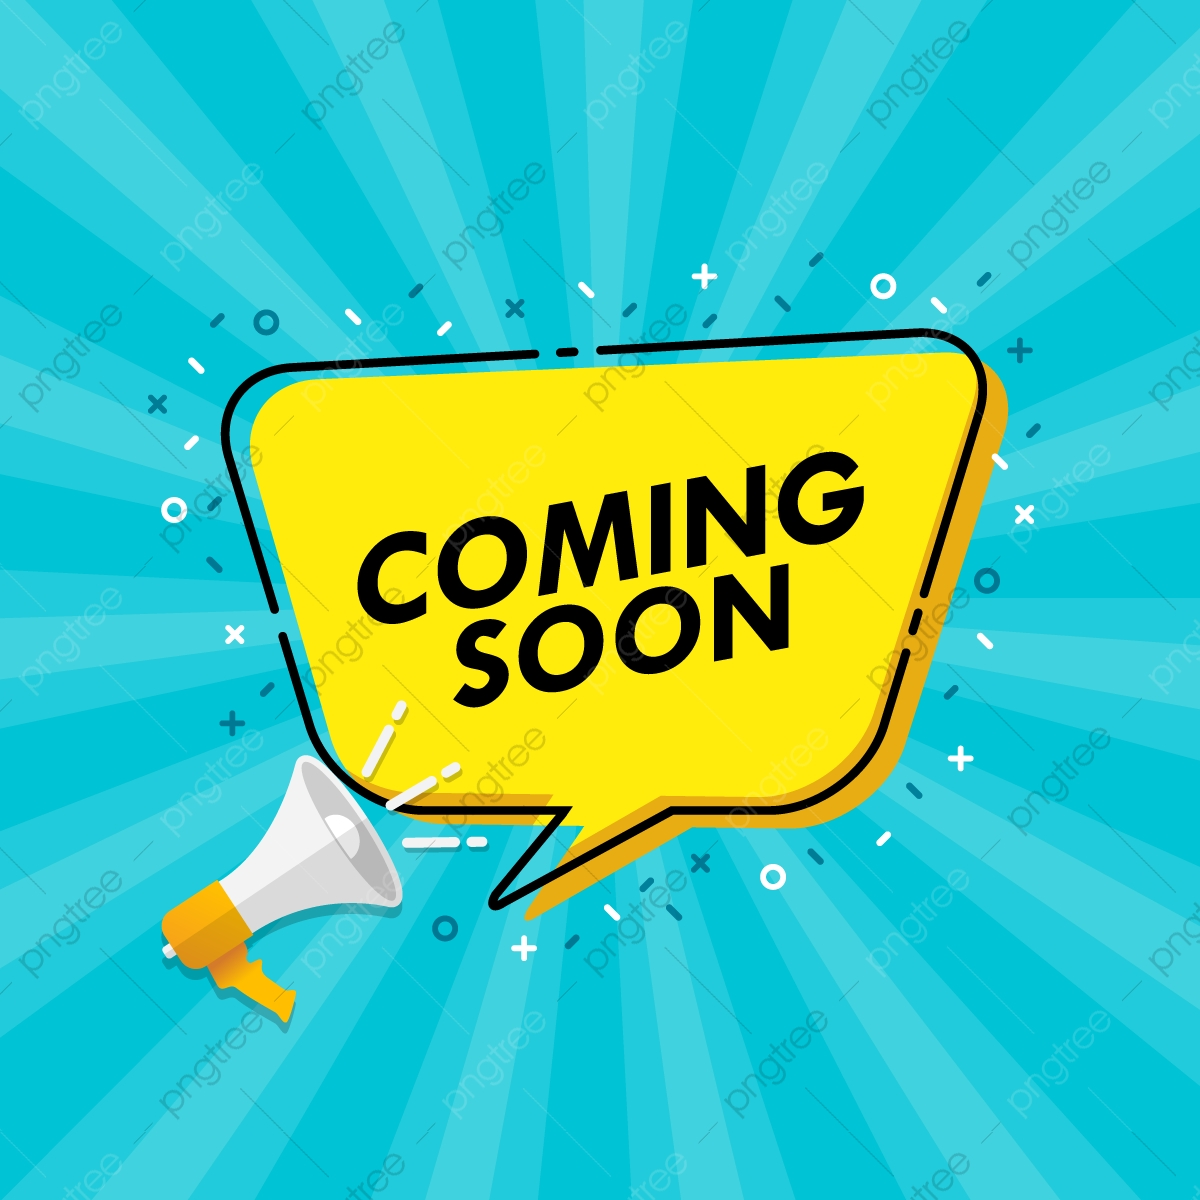 Coming Soon Banner With Megaphone And Speech Bubble Backgrounds Speech Bubble Png And Vector With Transparent Background For Free Download